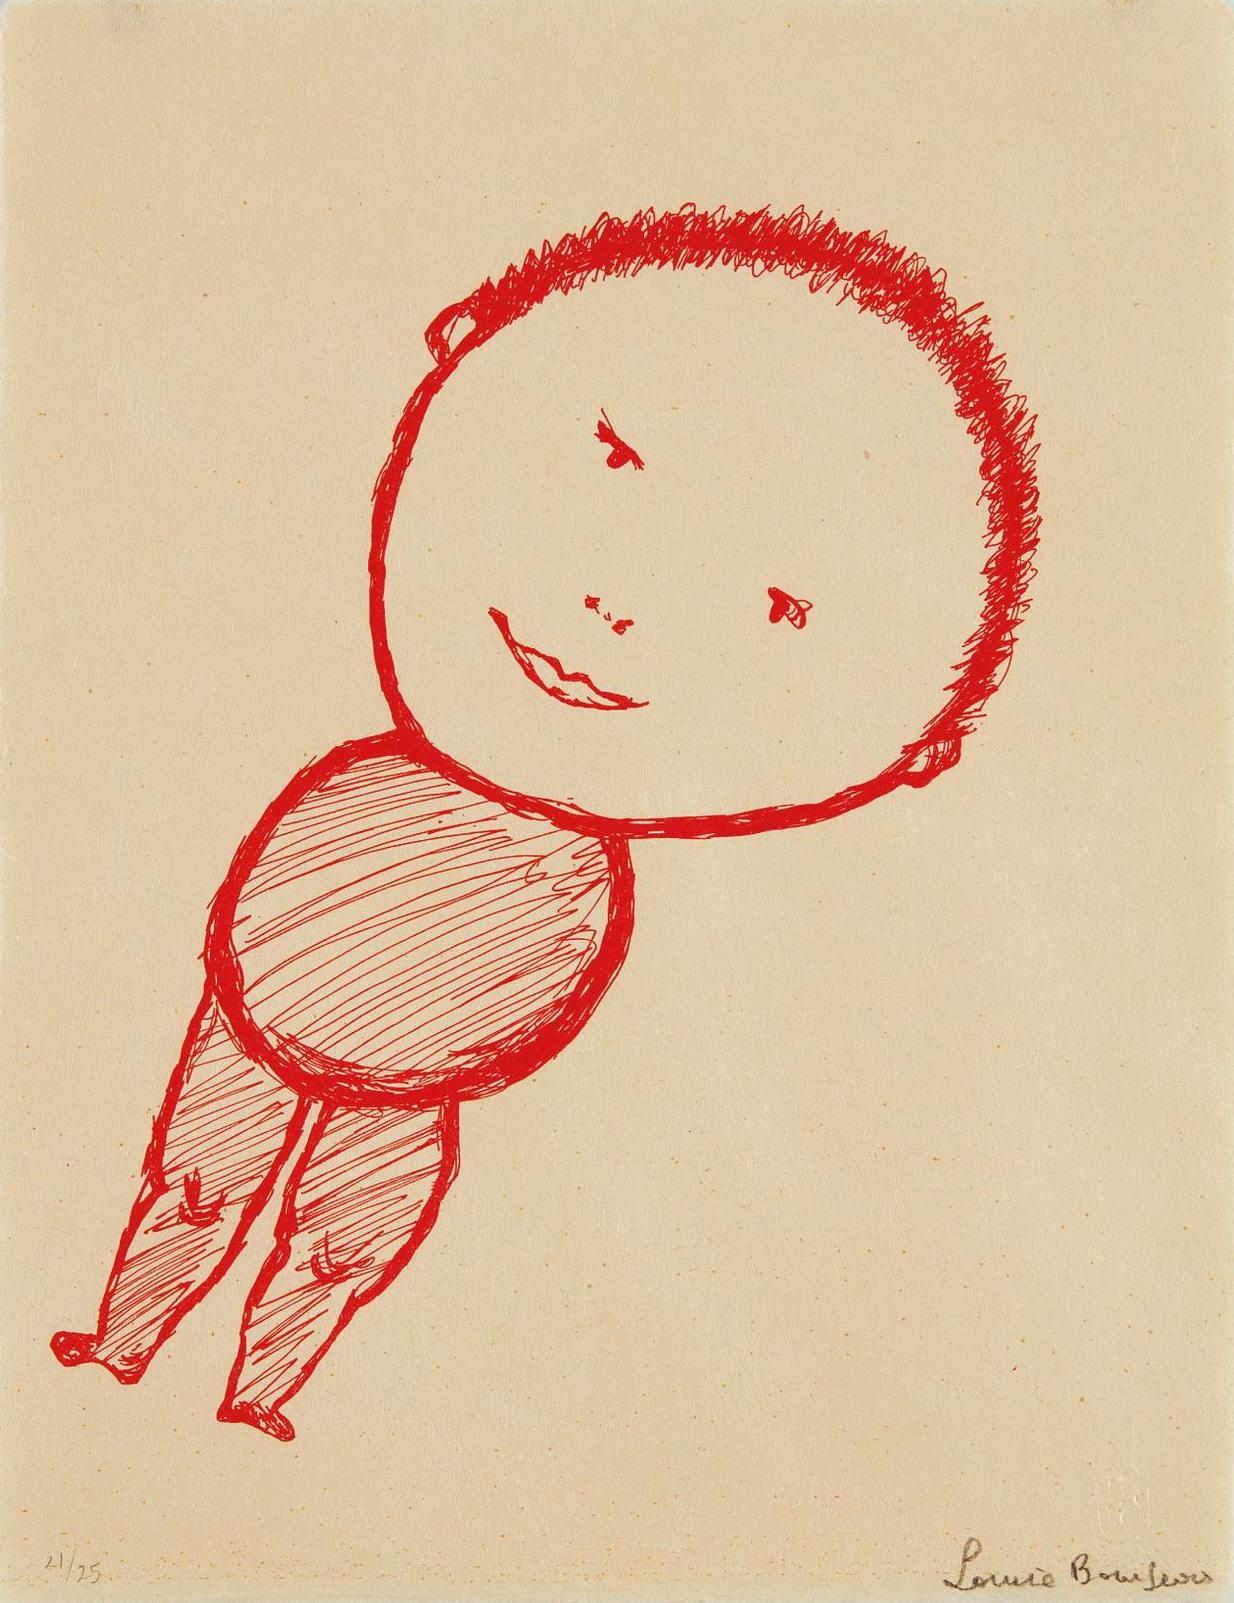 Louise Bourgeois-The Smile-2001